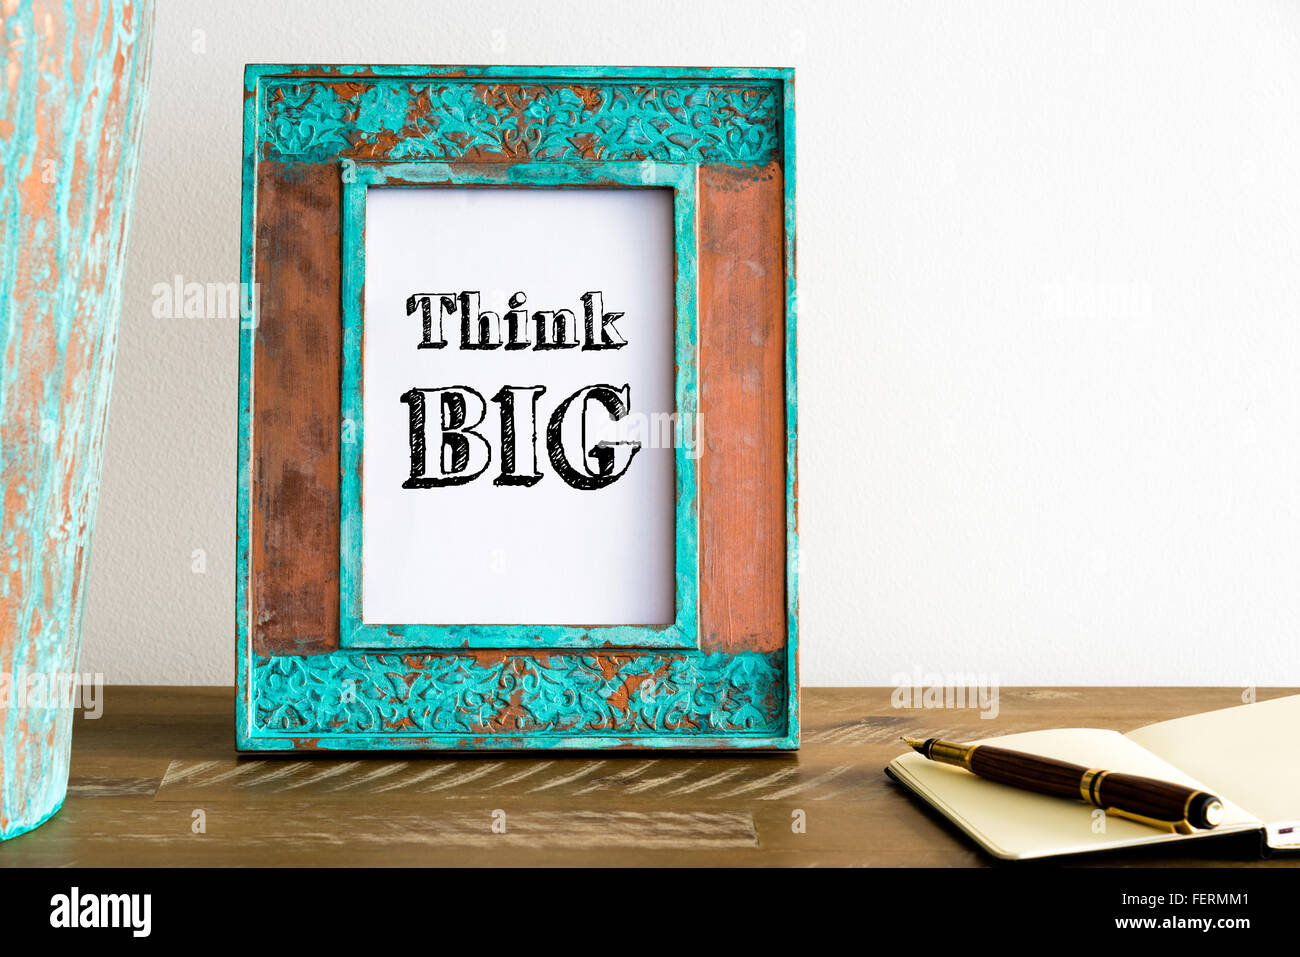 Vintage photo frame on wooden table over white wall background with motivational message THINK BIG , copy space - Stock Image